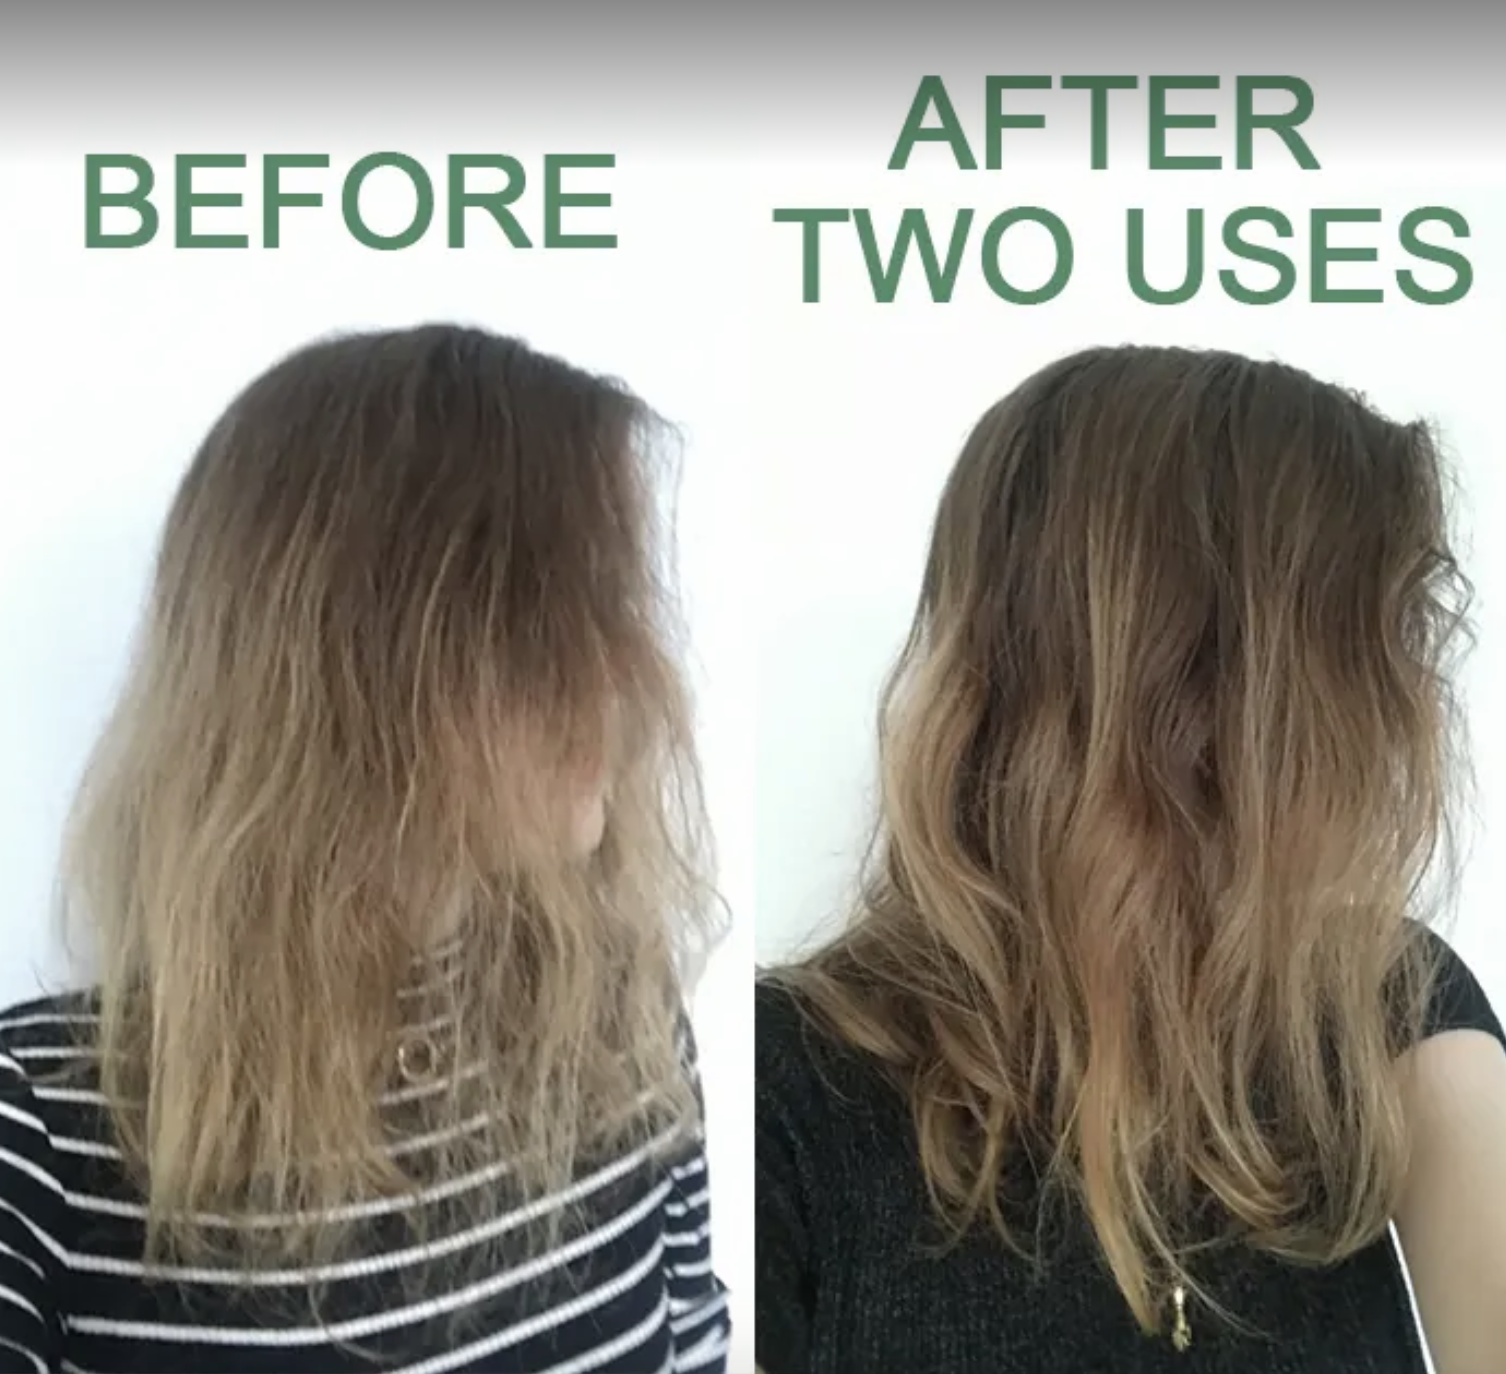 11 Useful Products For Anyone With Damaged Hair